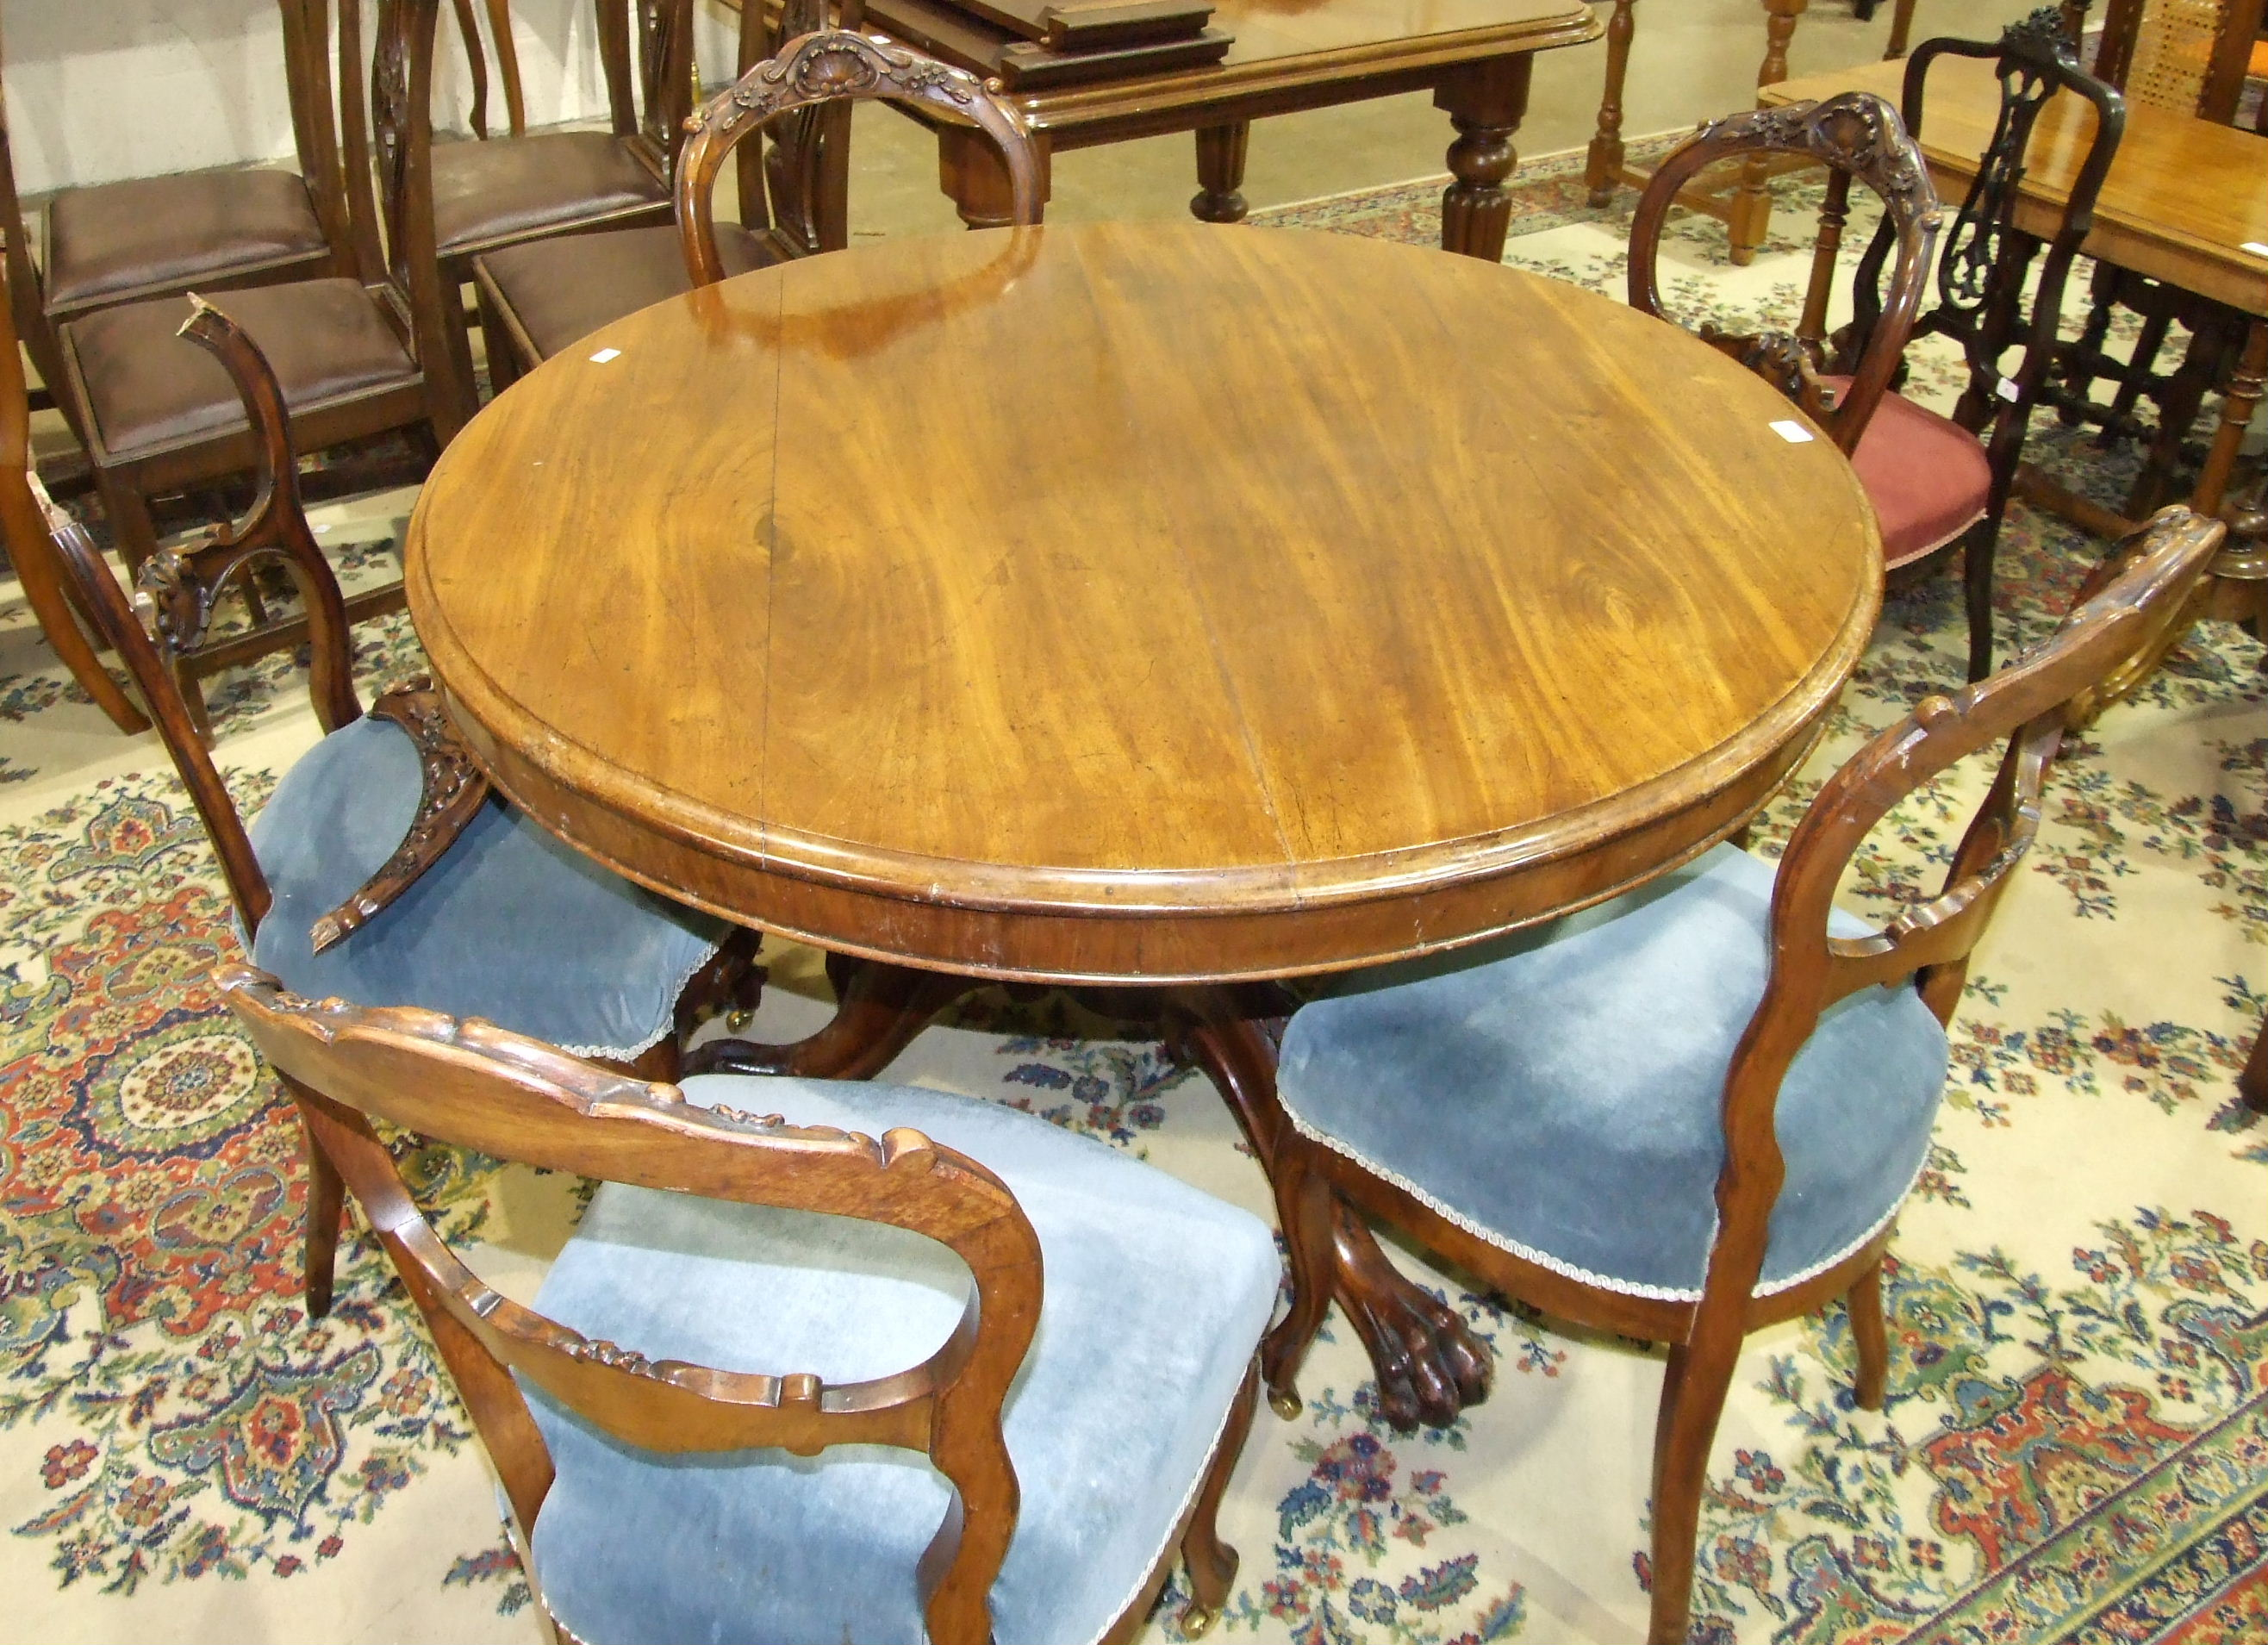 Lot 42 - A Victorian mahogany circular breakfast table with moulded border, on turned column.